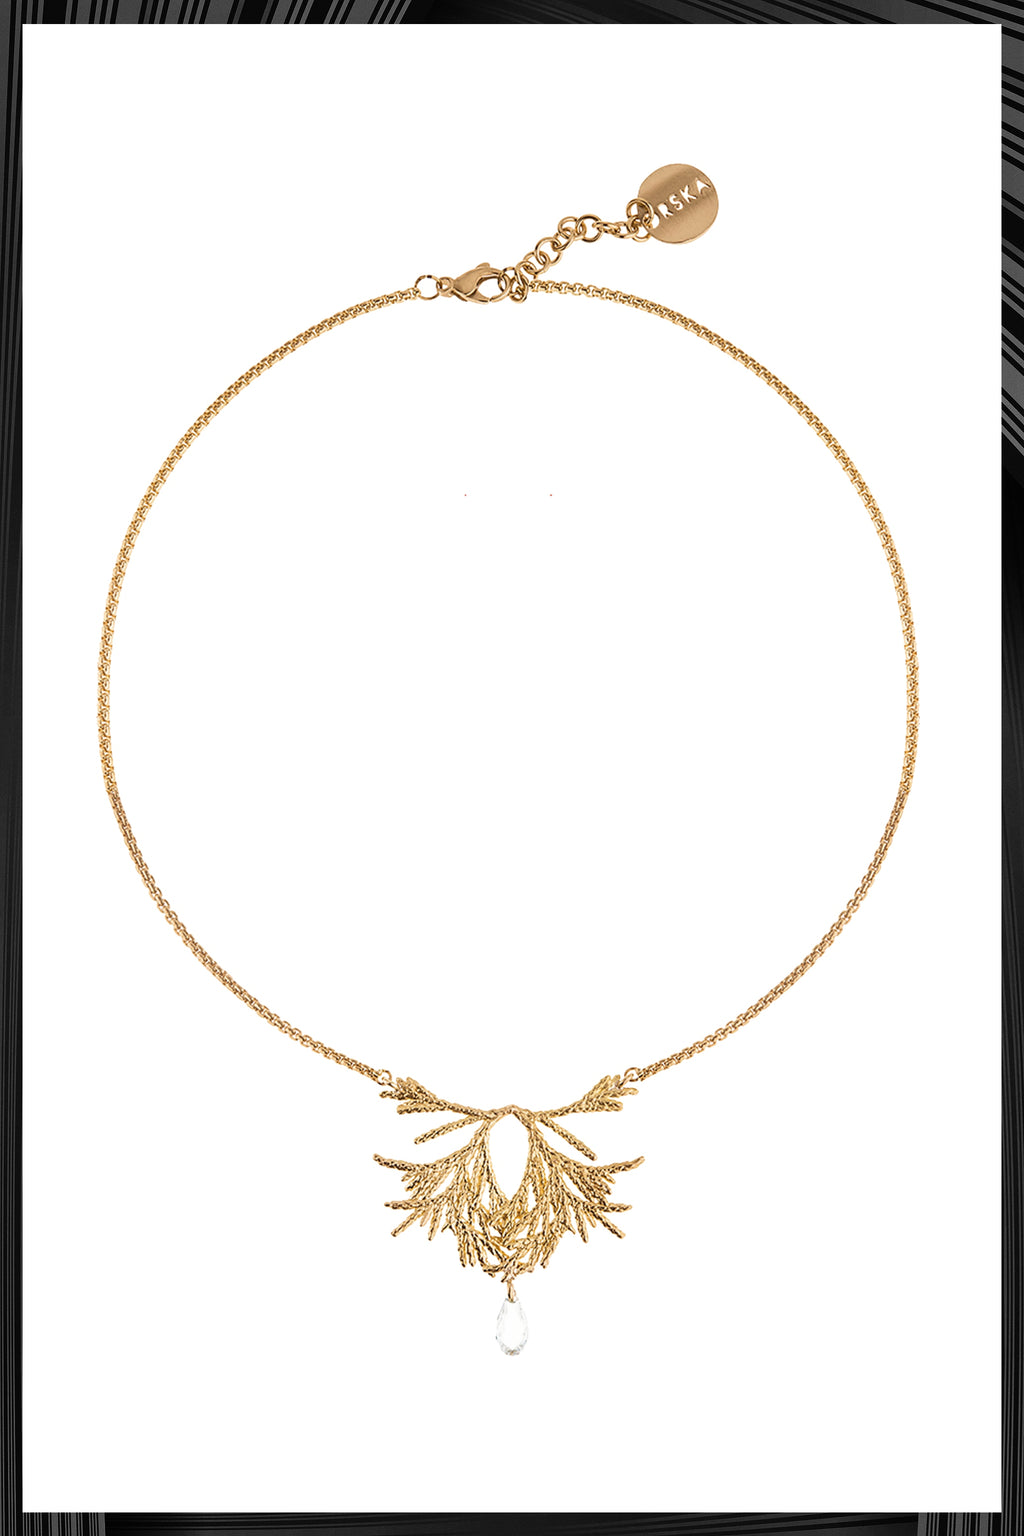 Thuja Necklace | Free Delivery - Quick Shipping